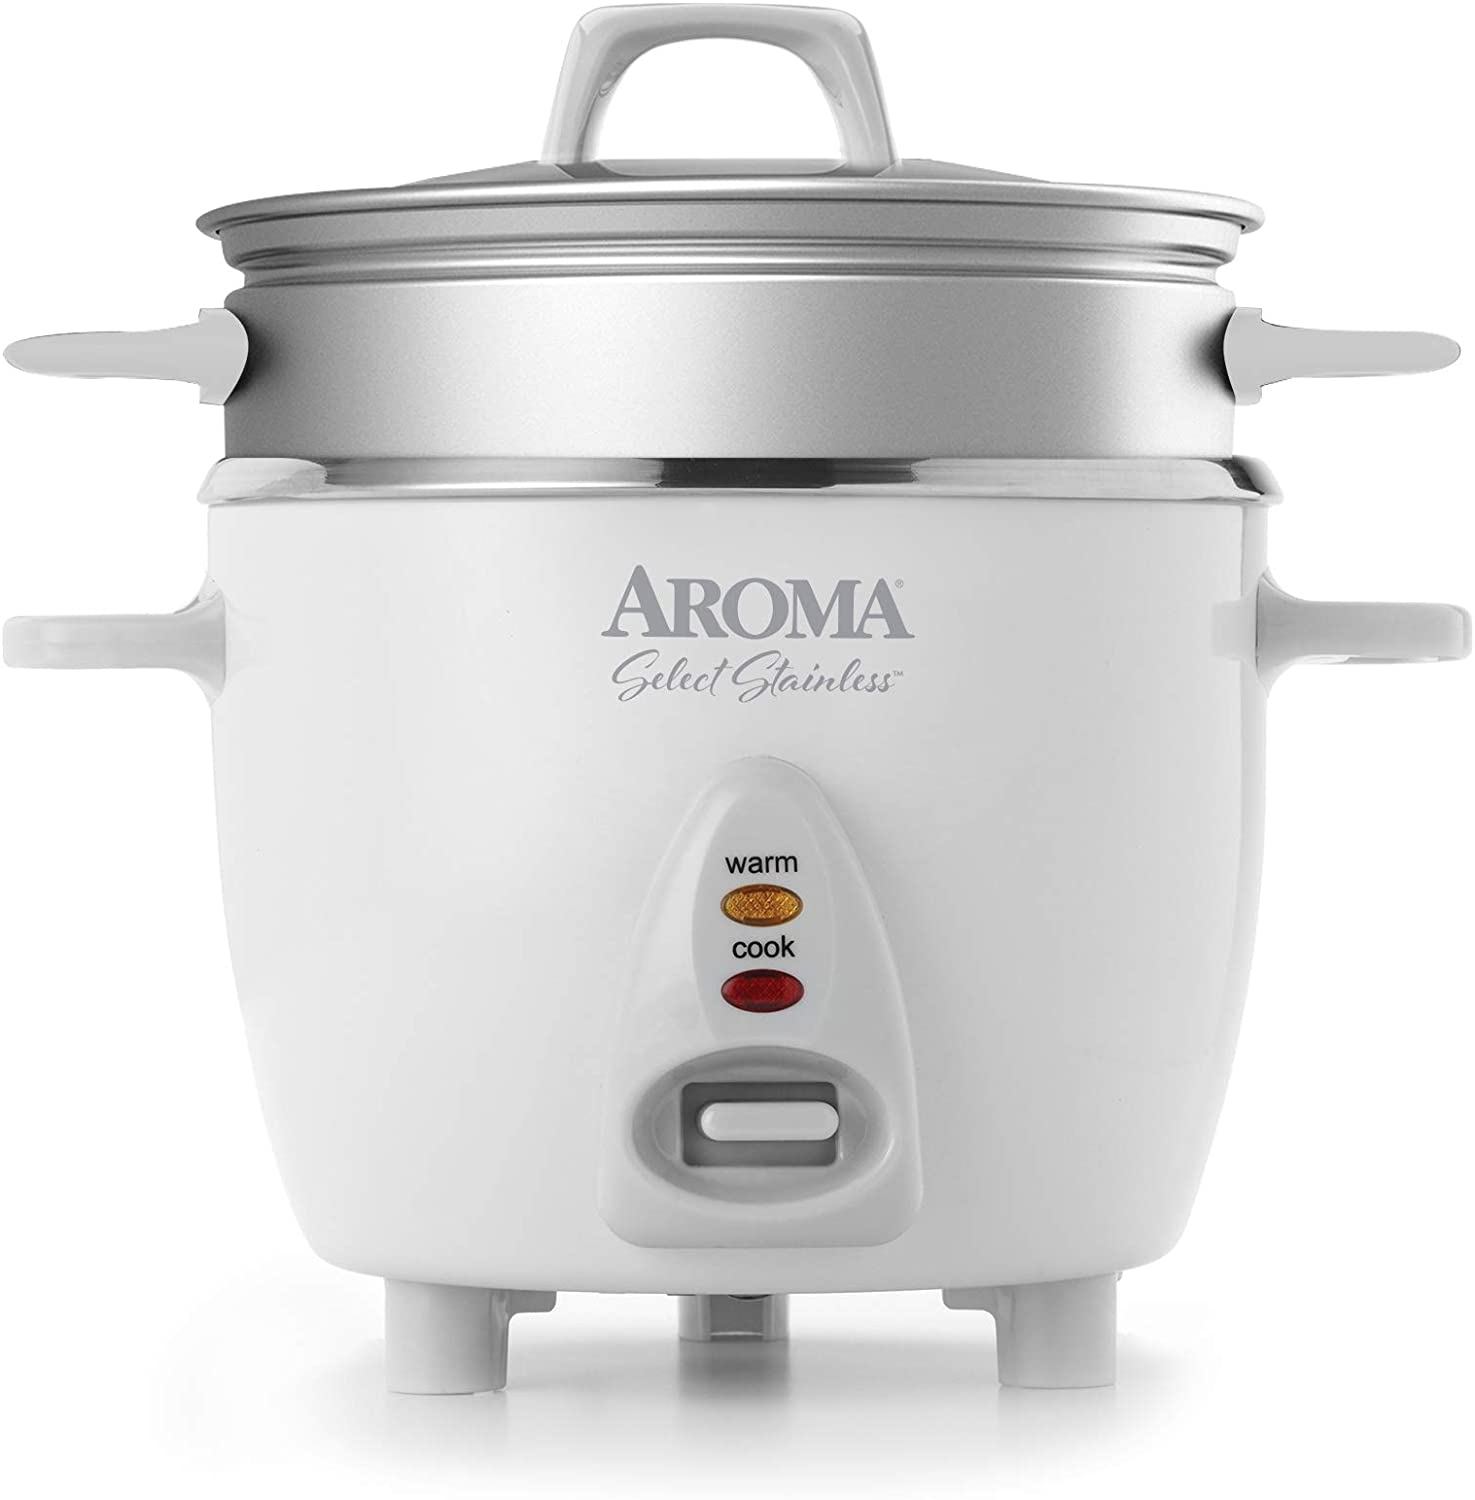 AROMA 6-Cup (Cooked) / 1.2Qt. Select Stainless Pot-Style Rice Cooker, & Food Steamer, One-Touch Operation, Automatic Keep Warm Mode, White (ARC-753-1SG)